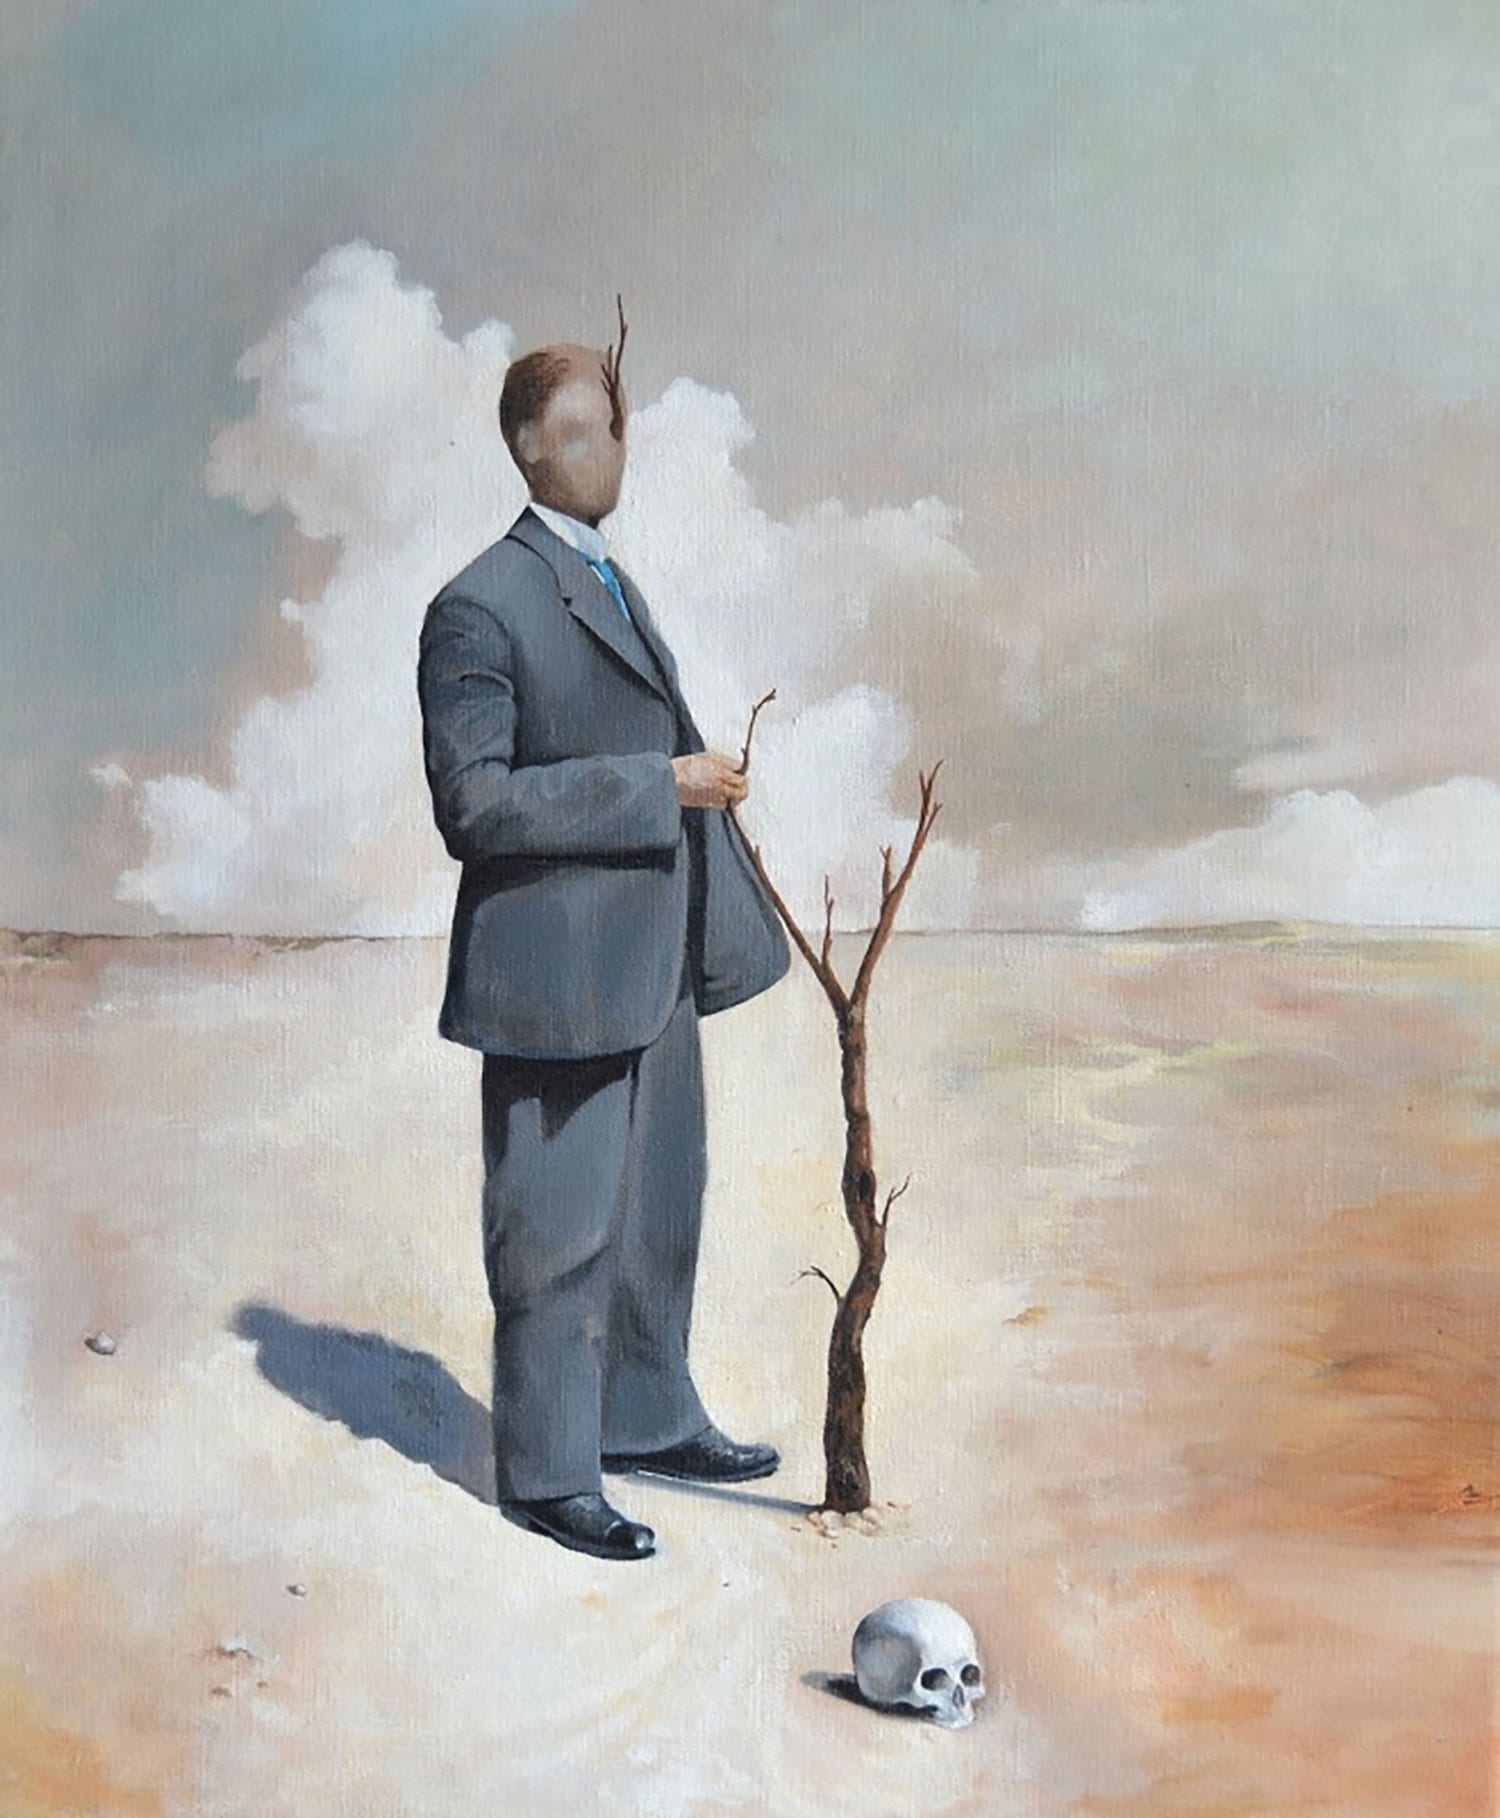 Martin Jonsson's Surreal & Enigmatic Paintings | Yellowtrace